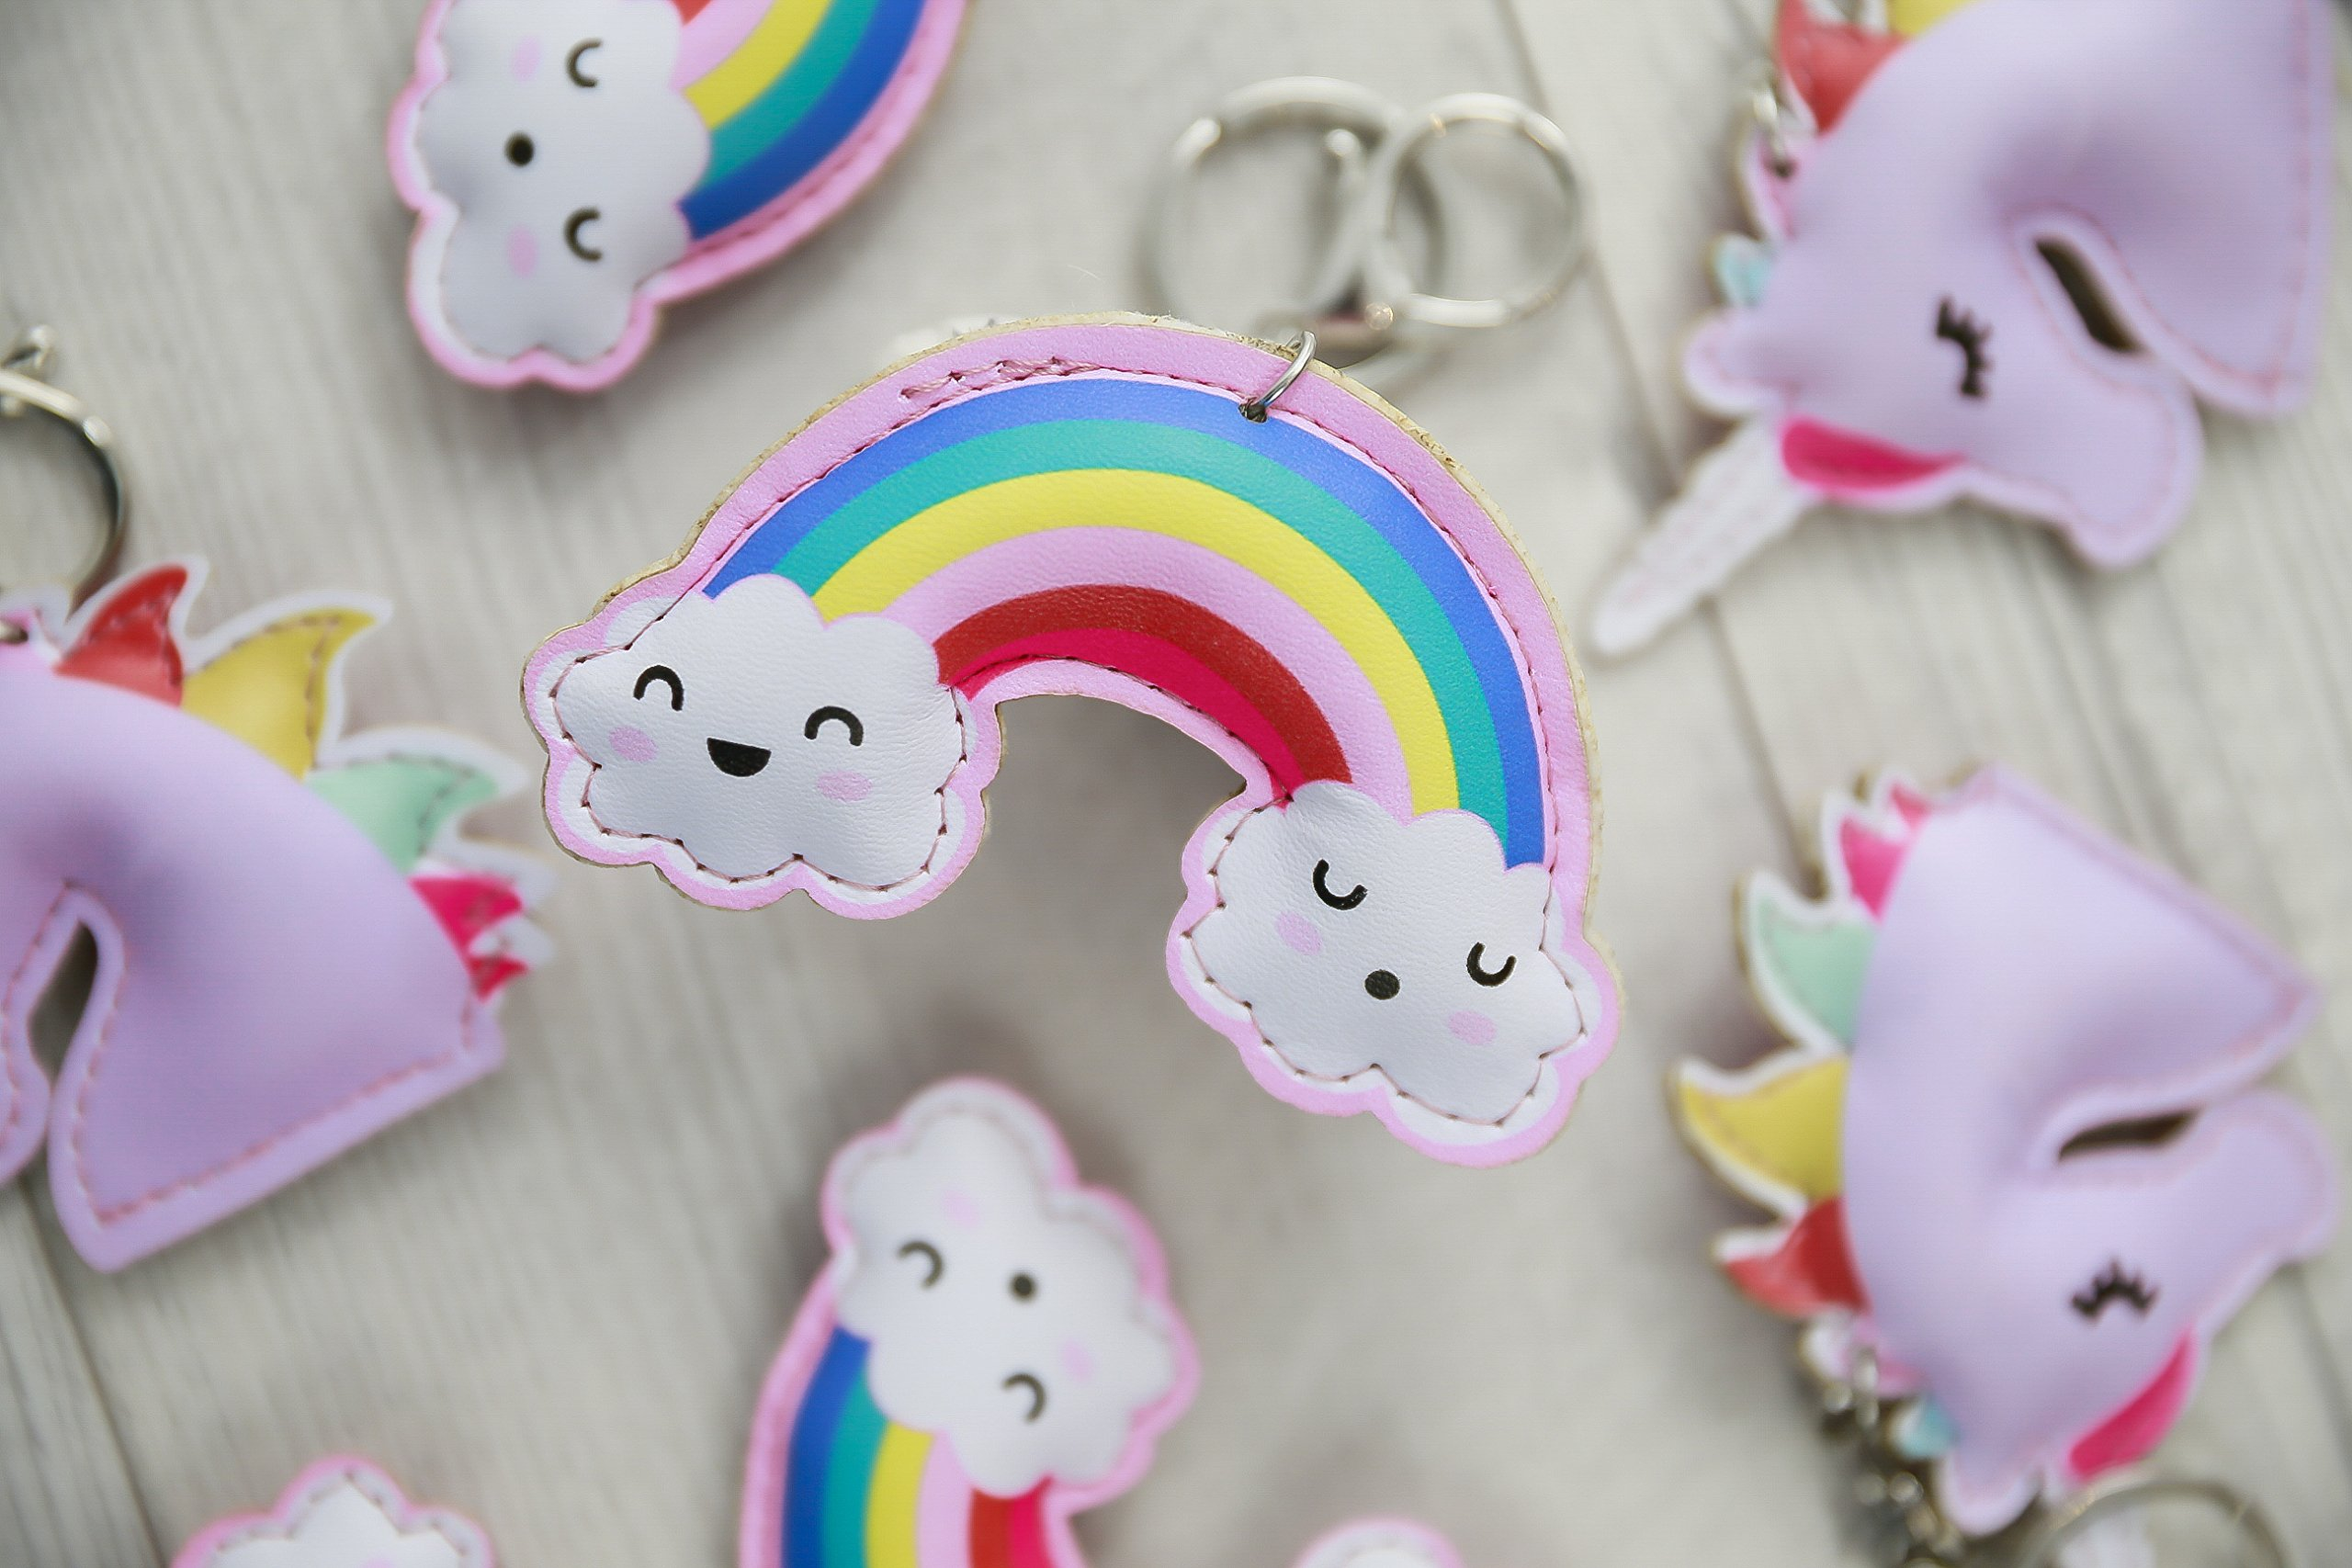 Hugo & Emmy NEW: Unicorn Rainbow Keychains and Keyrings, 8 Pack - Bulk Unicorn Party Favors, Supplies, Prizes, Accessories for Girls and Kids Birthday Parties – Includes 4 Unicorns & 4 Rainbows